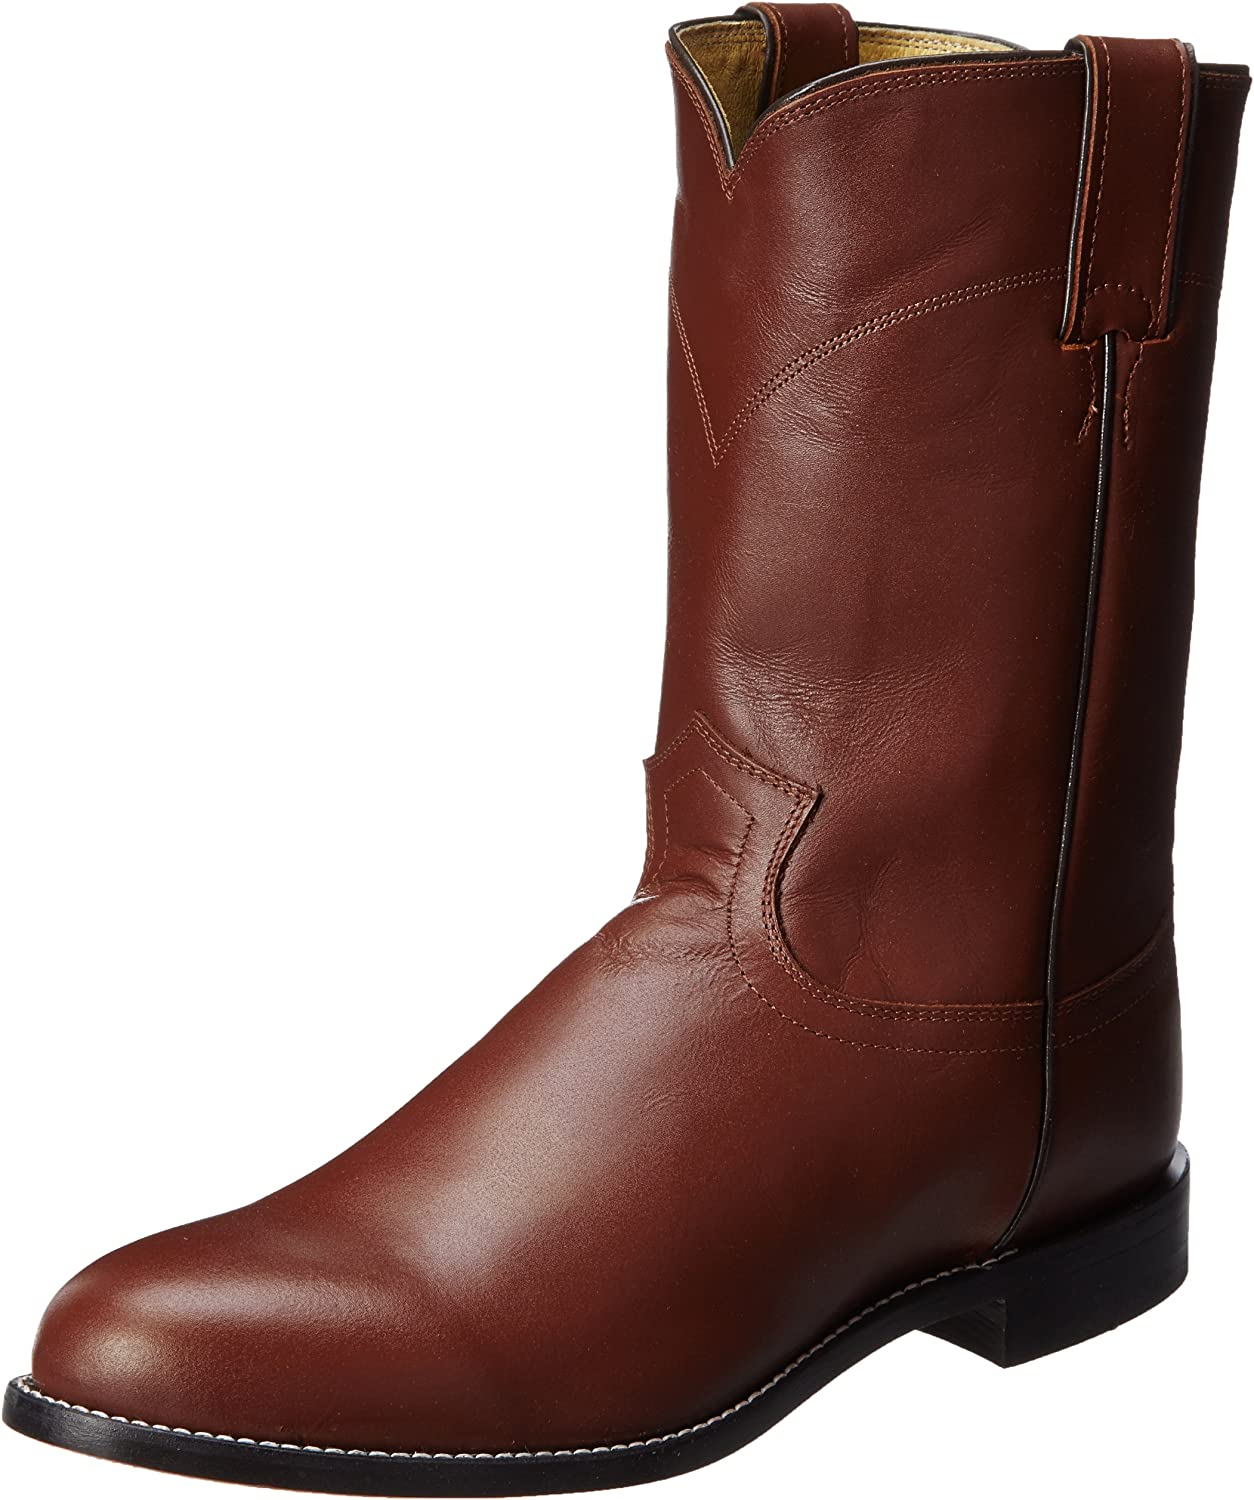 In stock Justin Financial sales sale mens Boots Cowboy